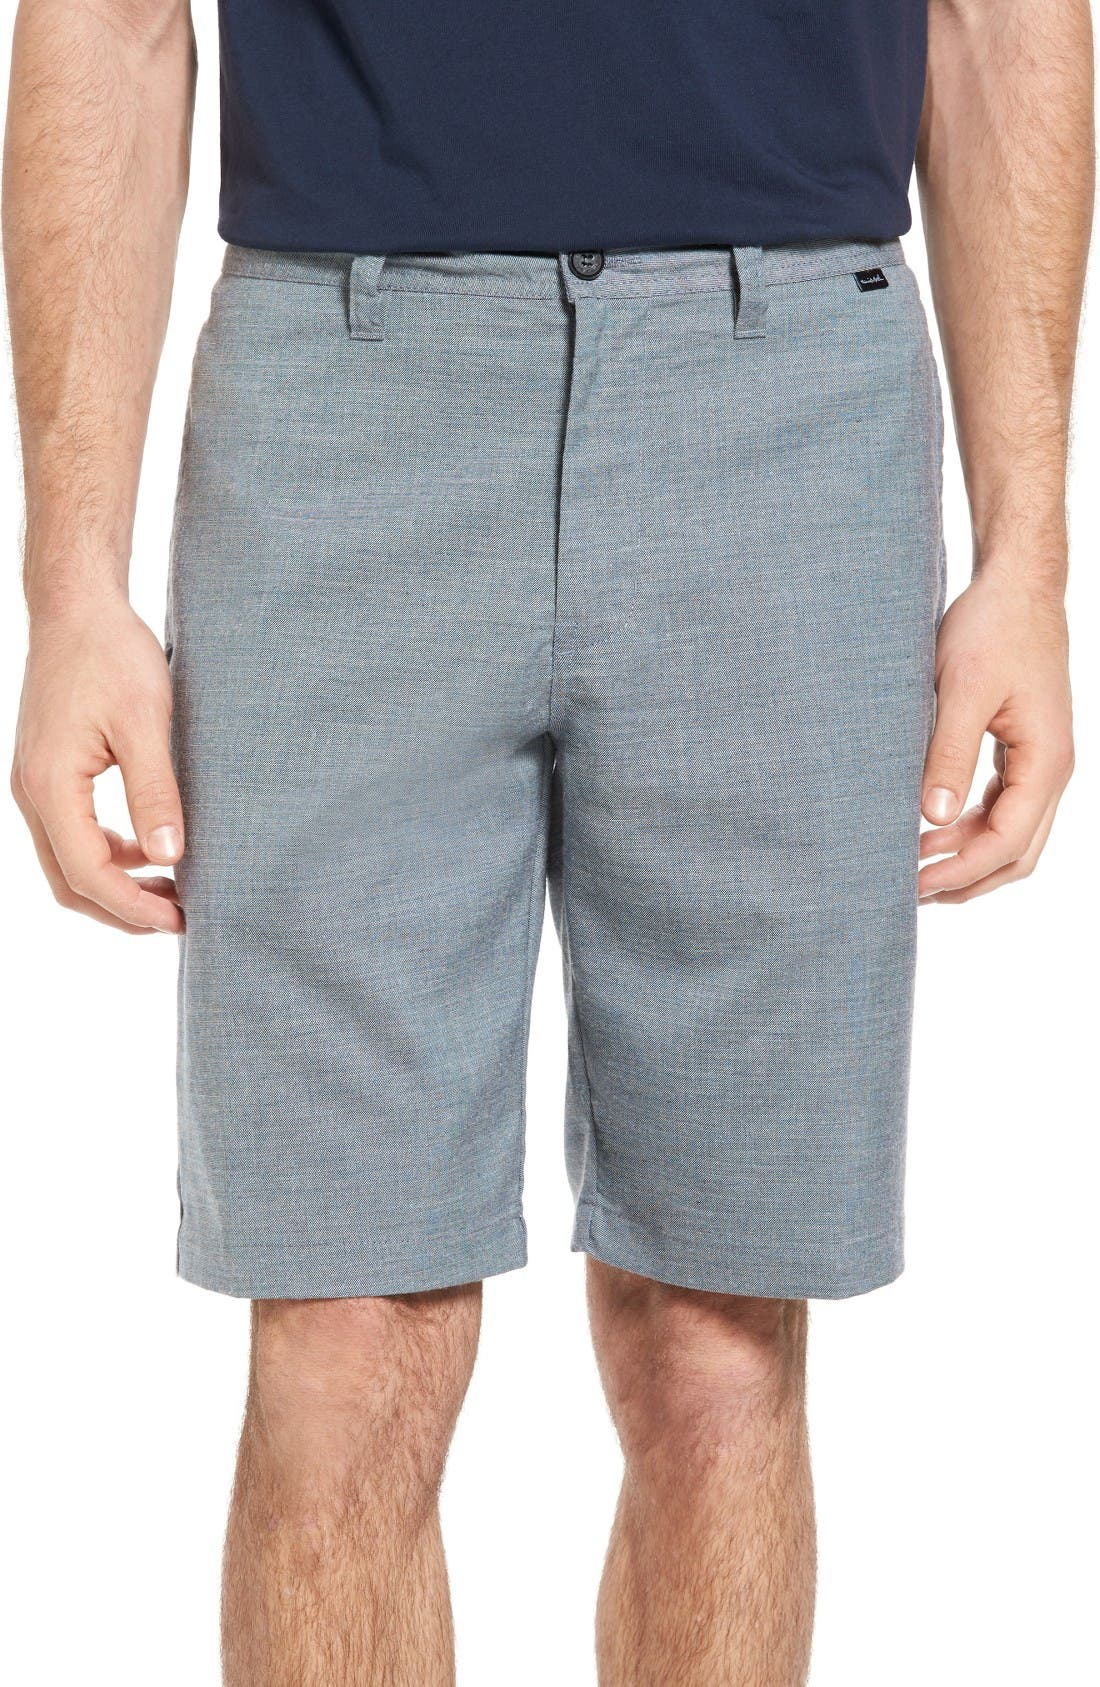 Romers Stretch Shorts,                         Main,                         color, Quiet Shade